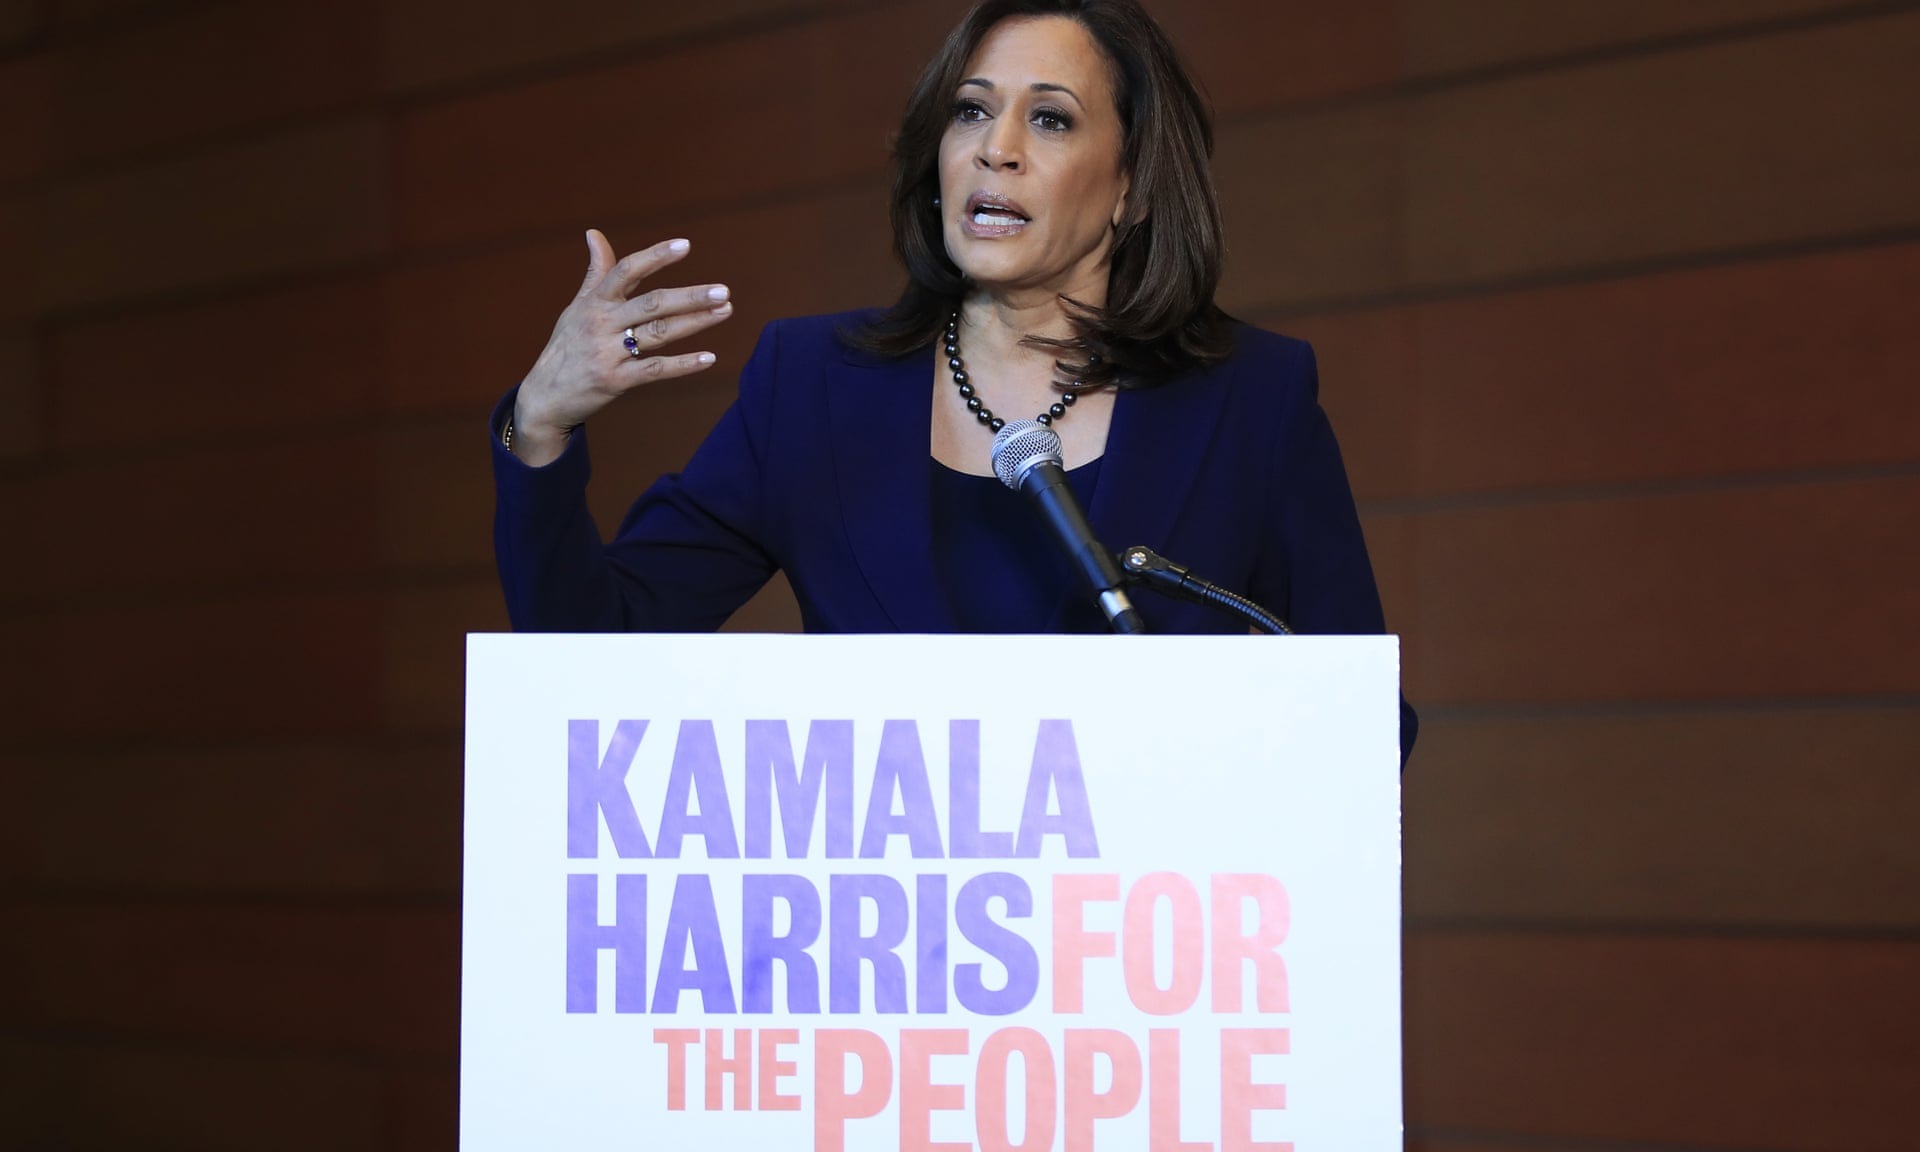 Kamala Harris decided to run for presidential elections.